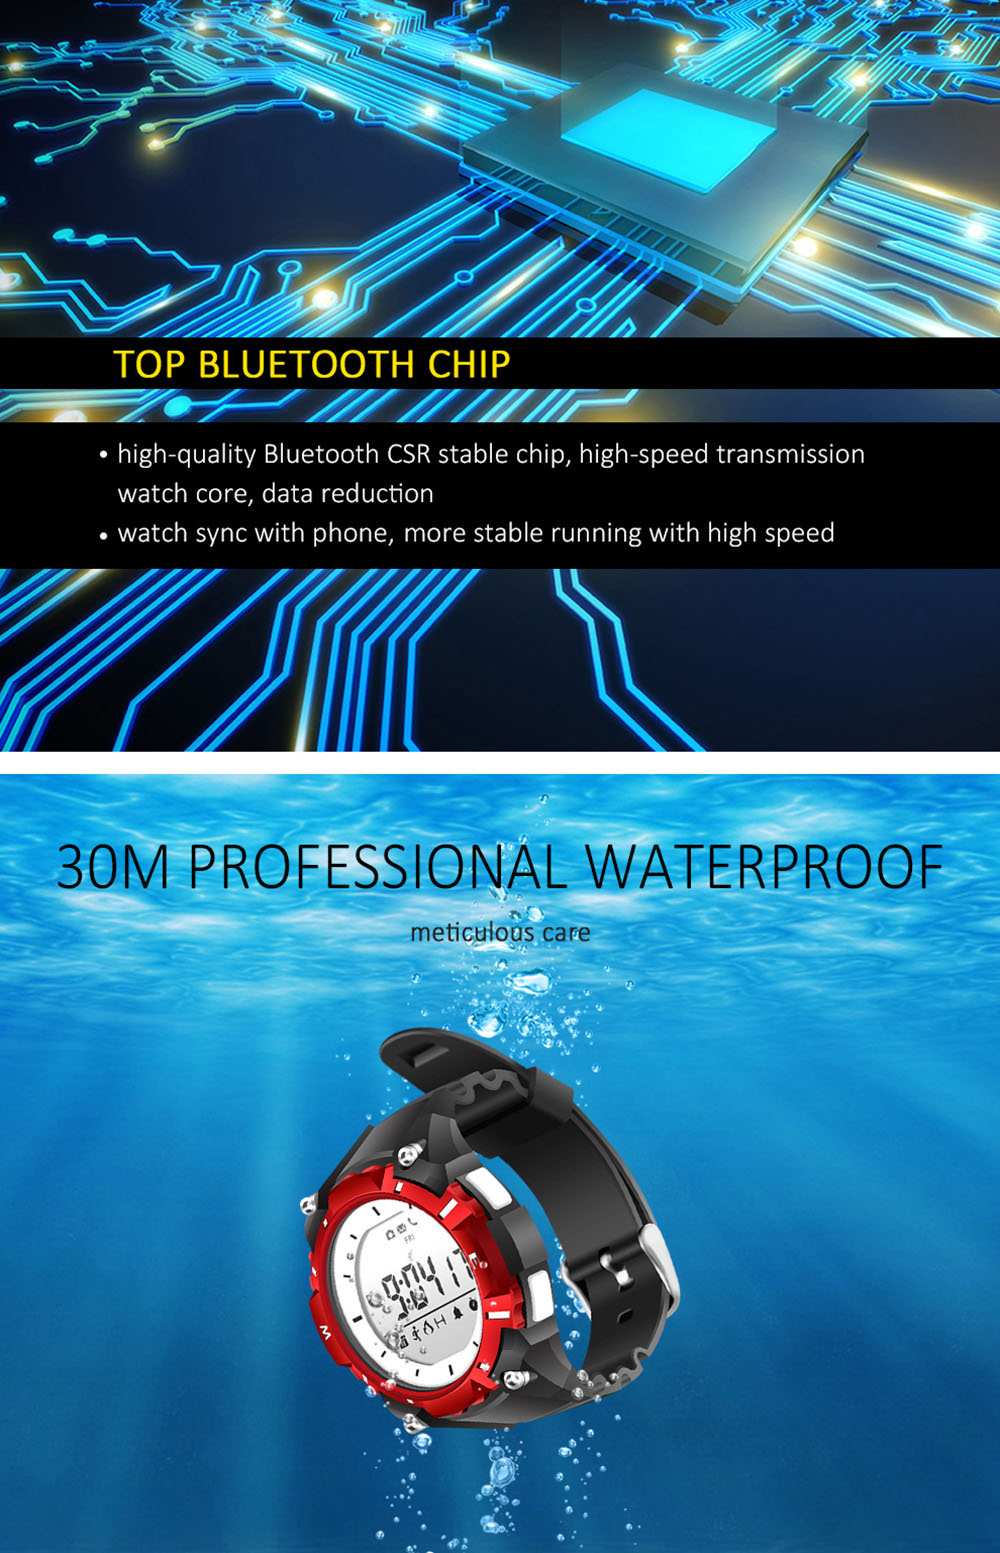 2017 New SW08 Smart Watch Bluetooth 4.0 Smartwatch LED 1.3 Inch Screen Health Tracker Calendar Waterproof Watch For Android IOS (1)